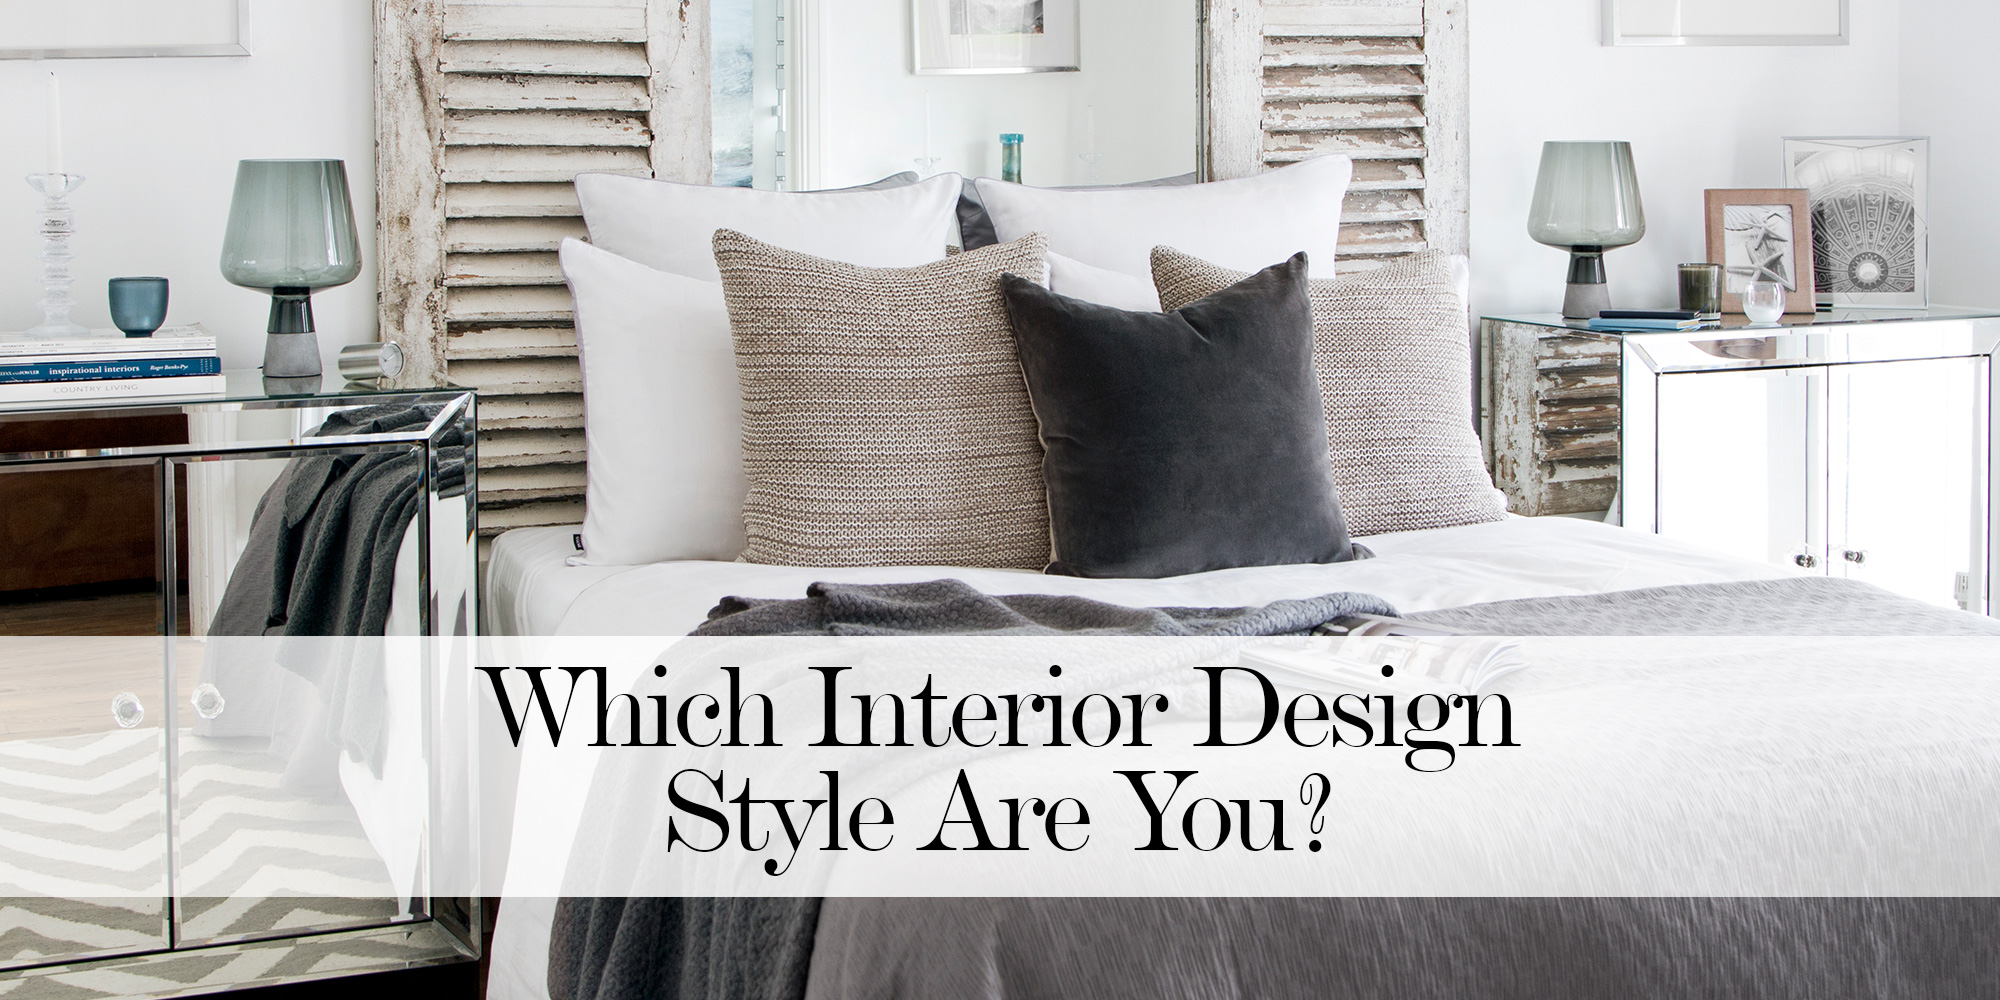 Which Interior Design Style Are You?